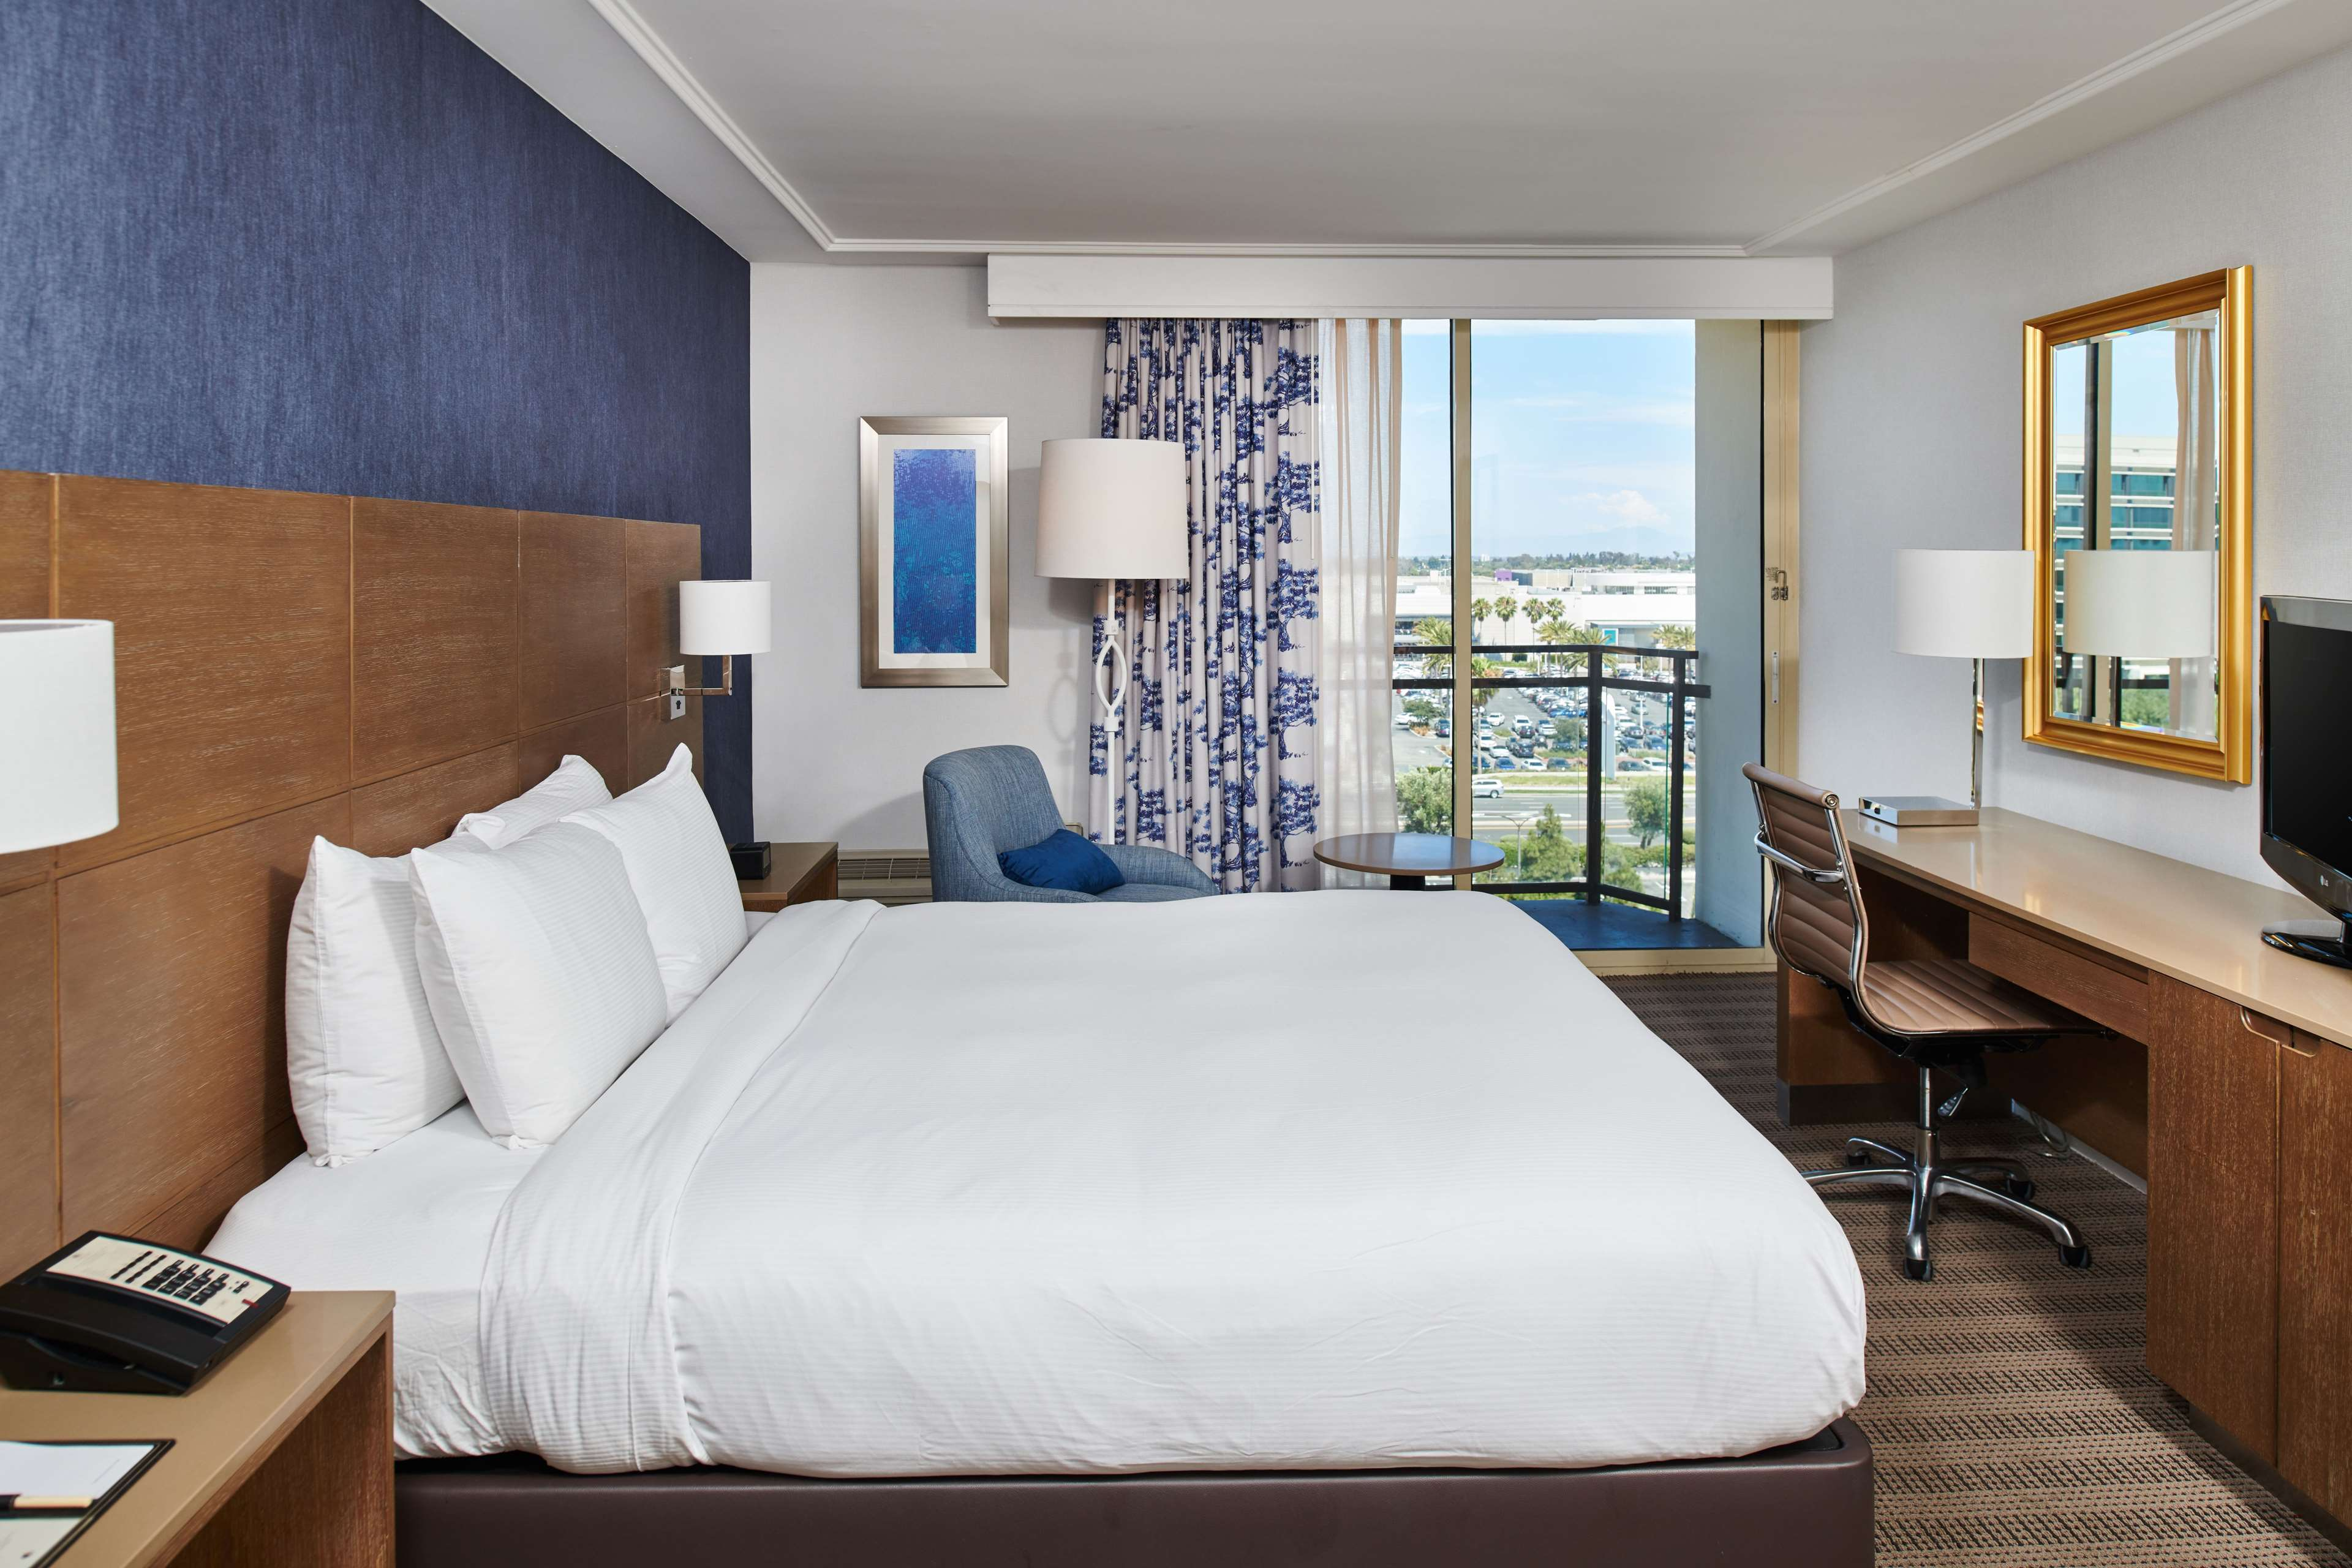 DoubleTree by Hilton Hotel Torrance - South Bay image 33